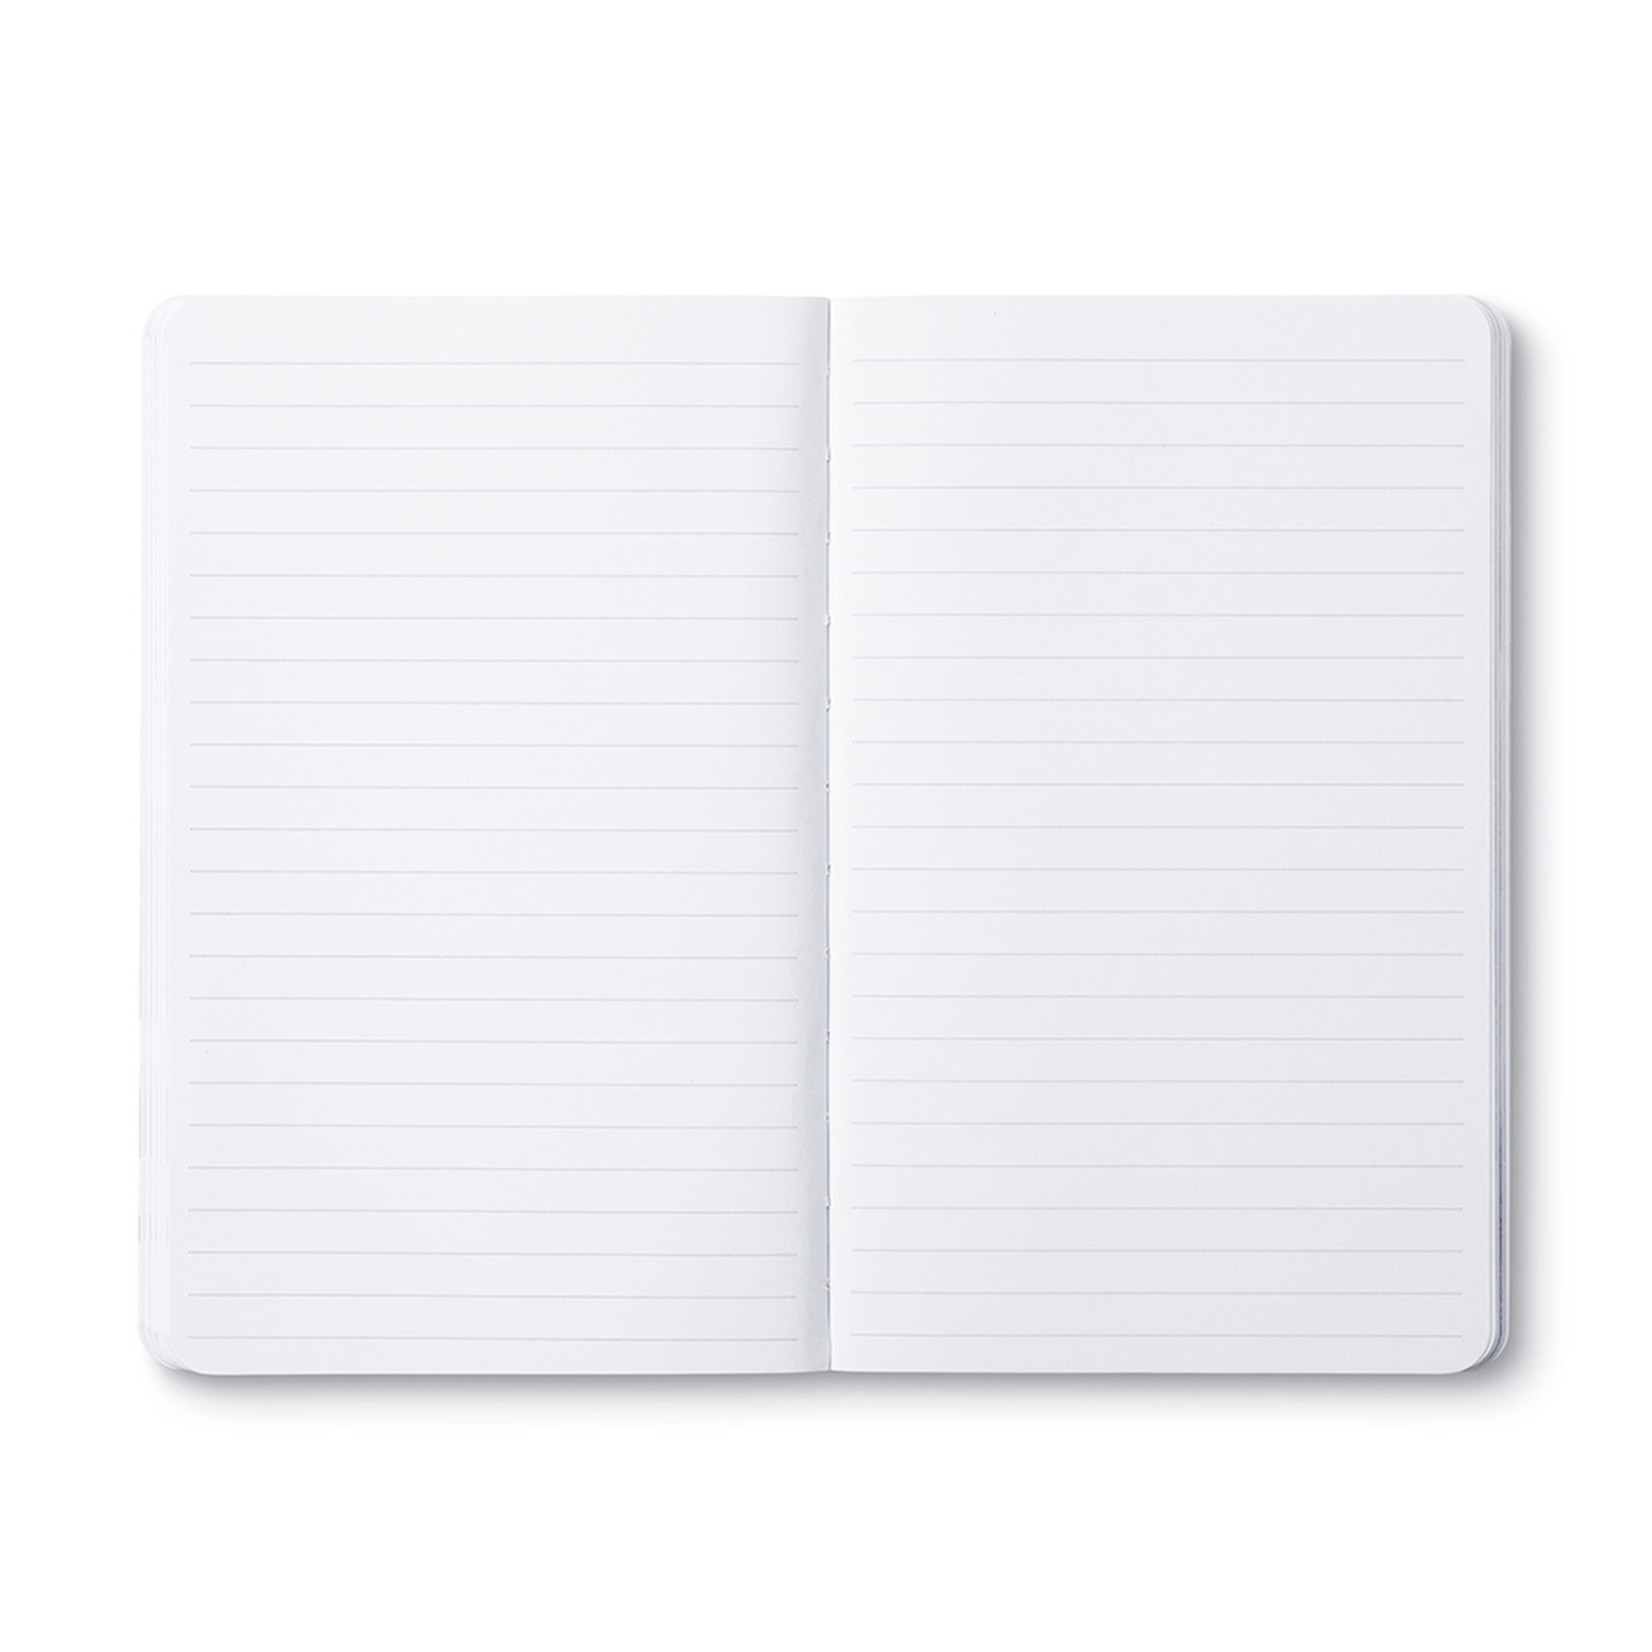 WRITE NOW JOURNAL - GO & SEE